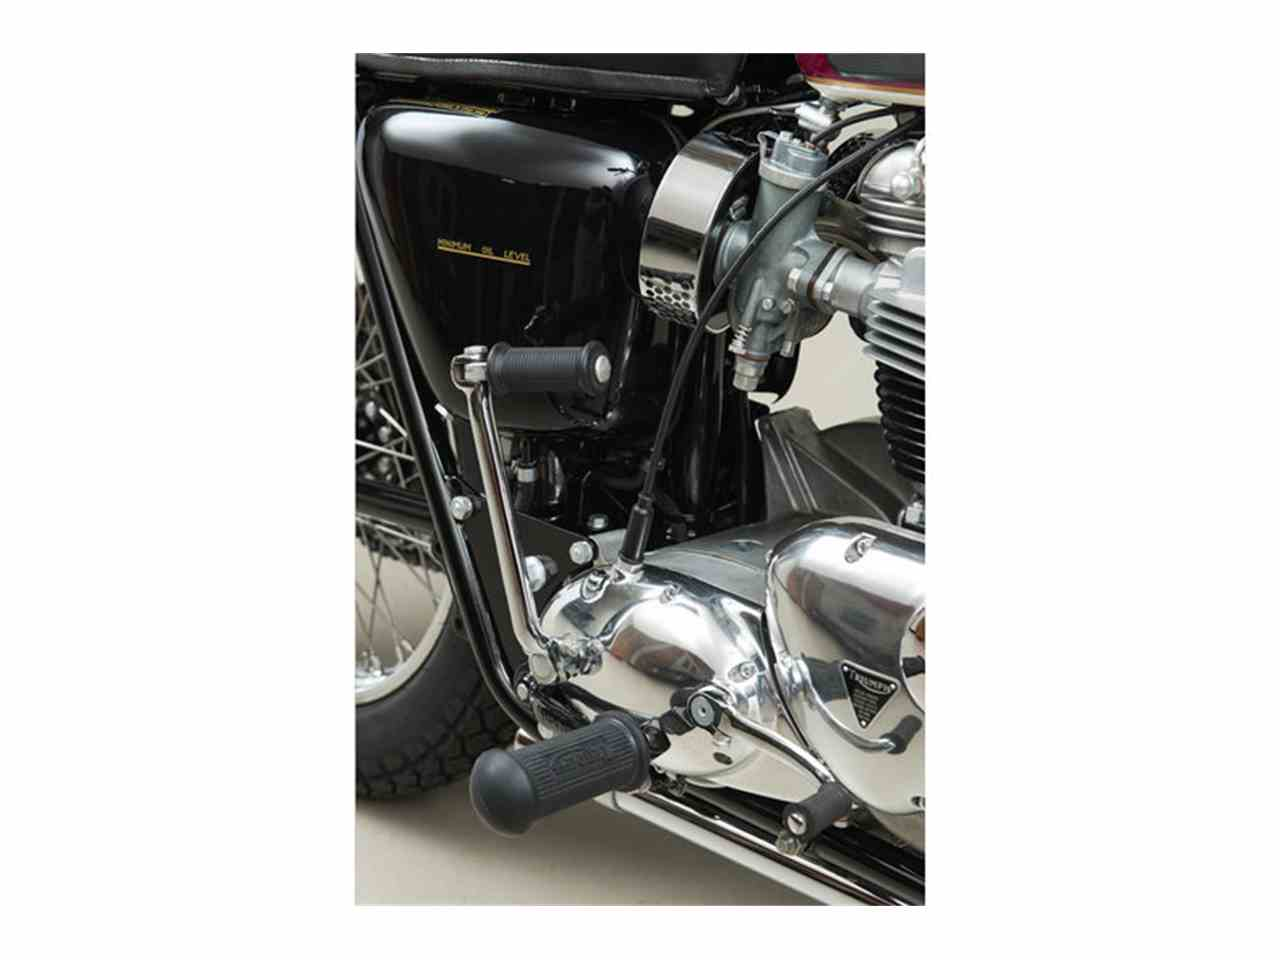 Large Picture of '67 Triumph T120 TT located in Scotts Valley California - $35,000.00 Offered by Canepa - KCDZ